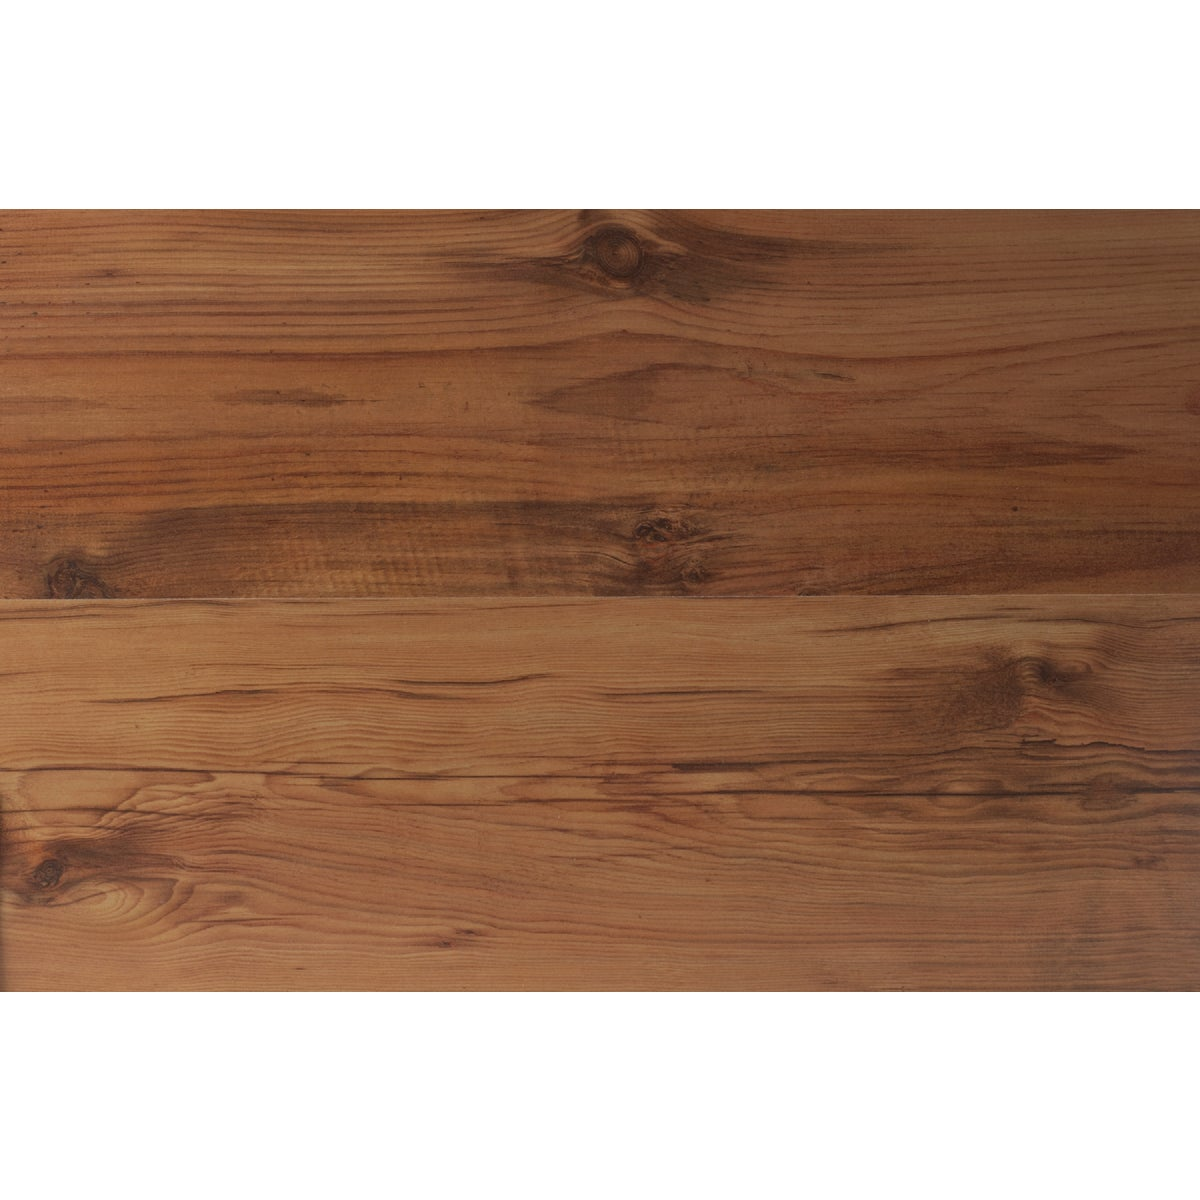 SACR PINE LAMINATE FLOOR